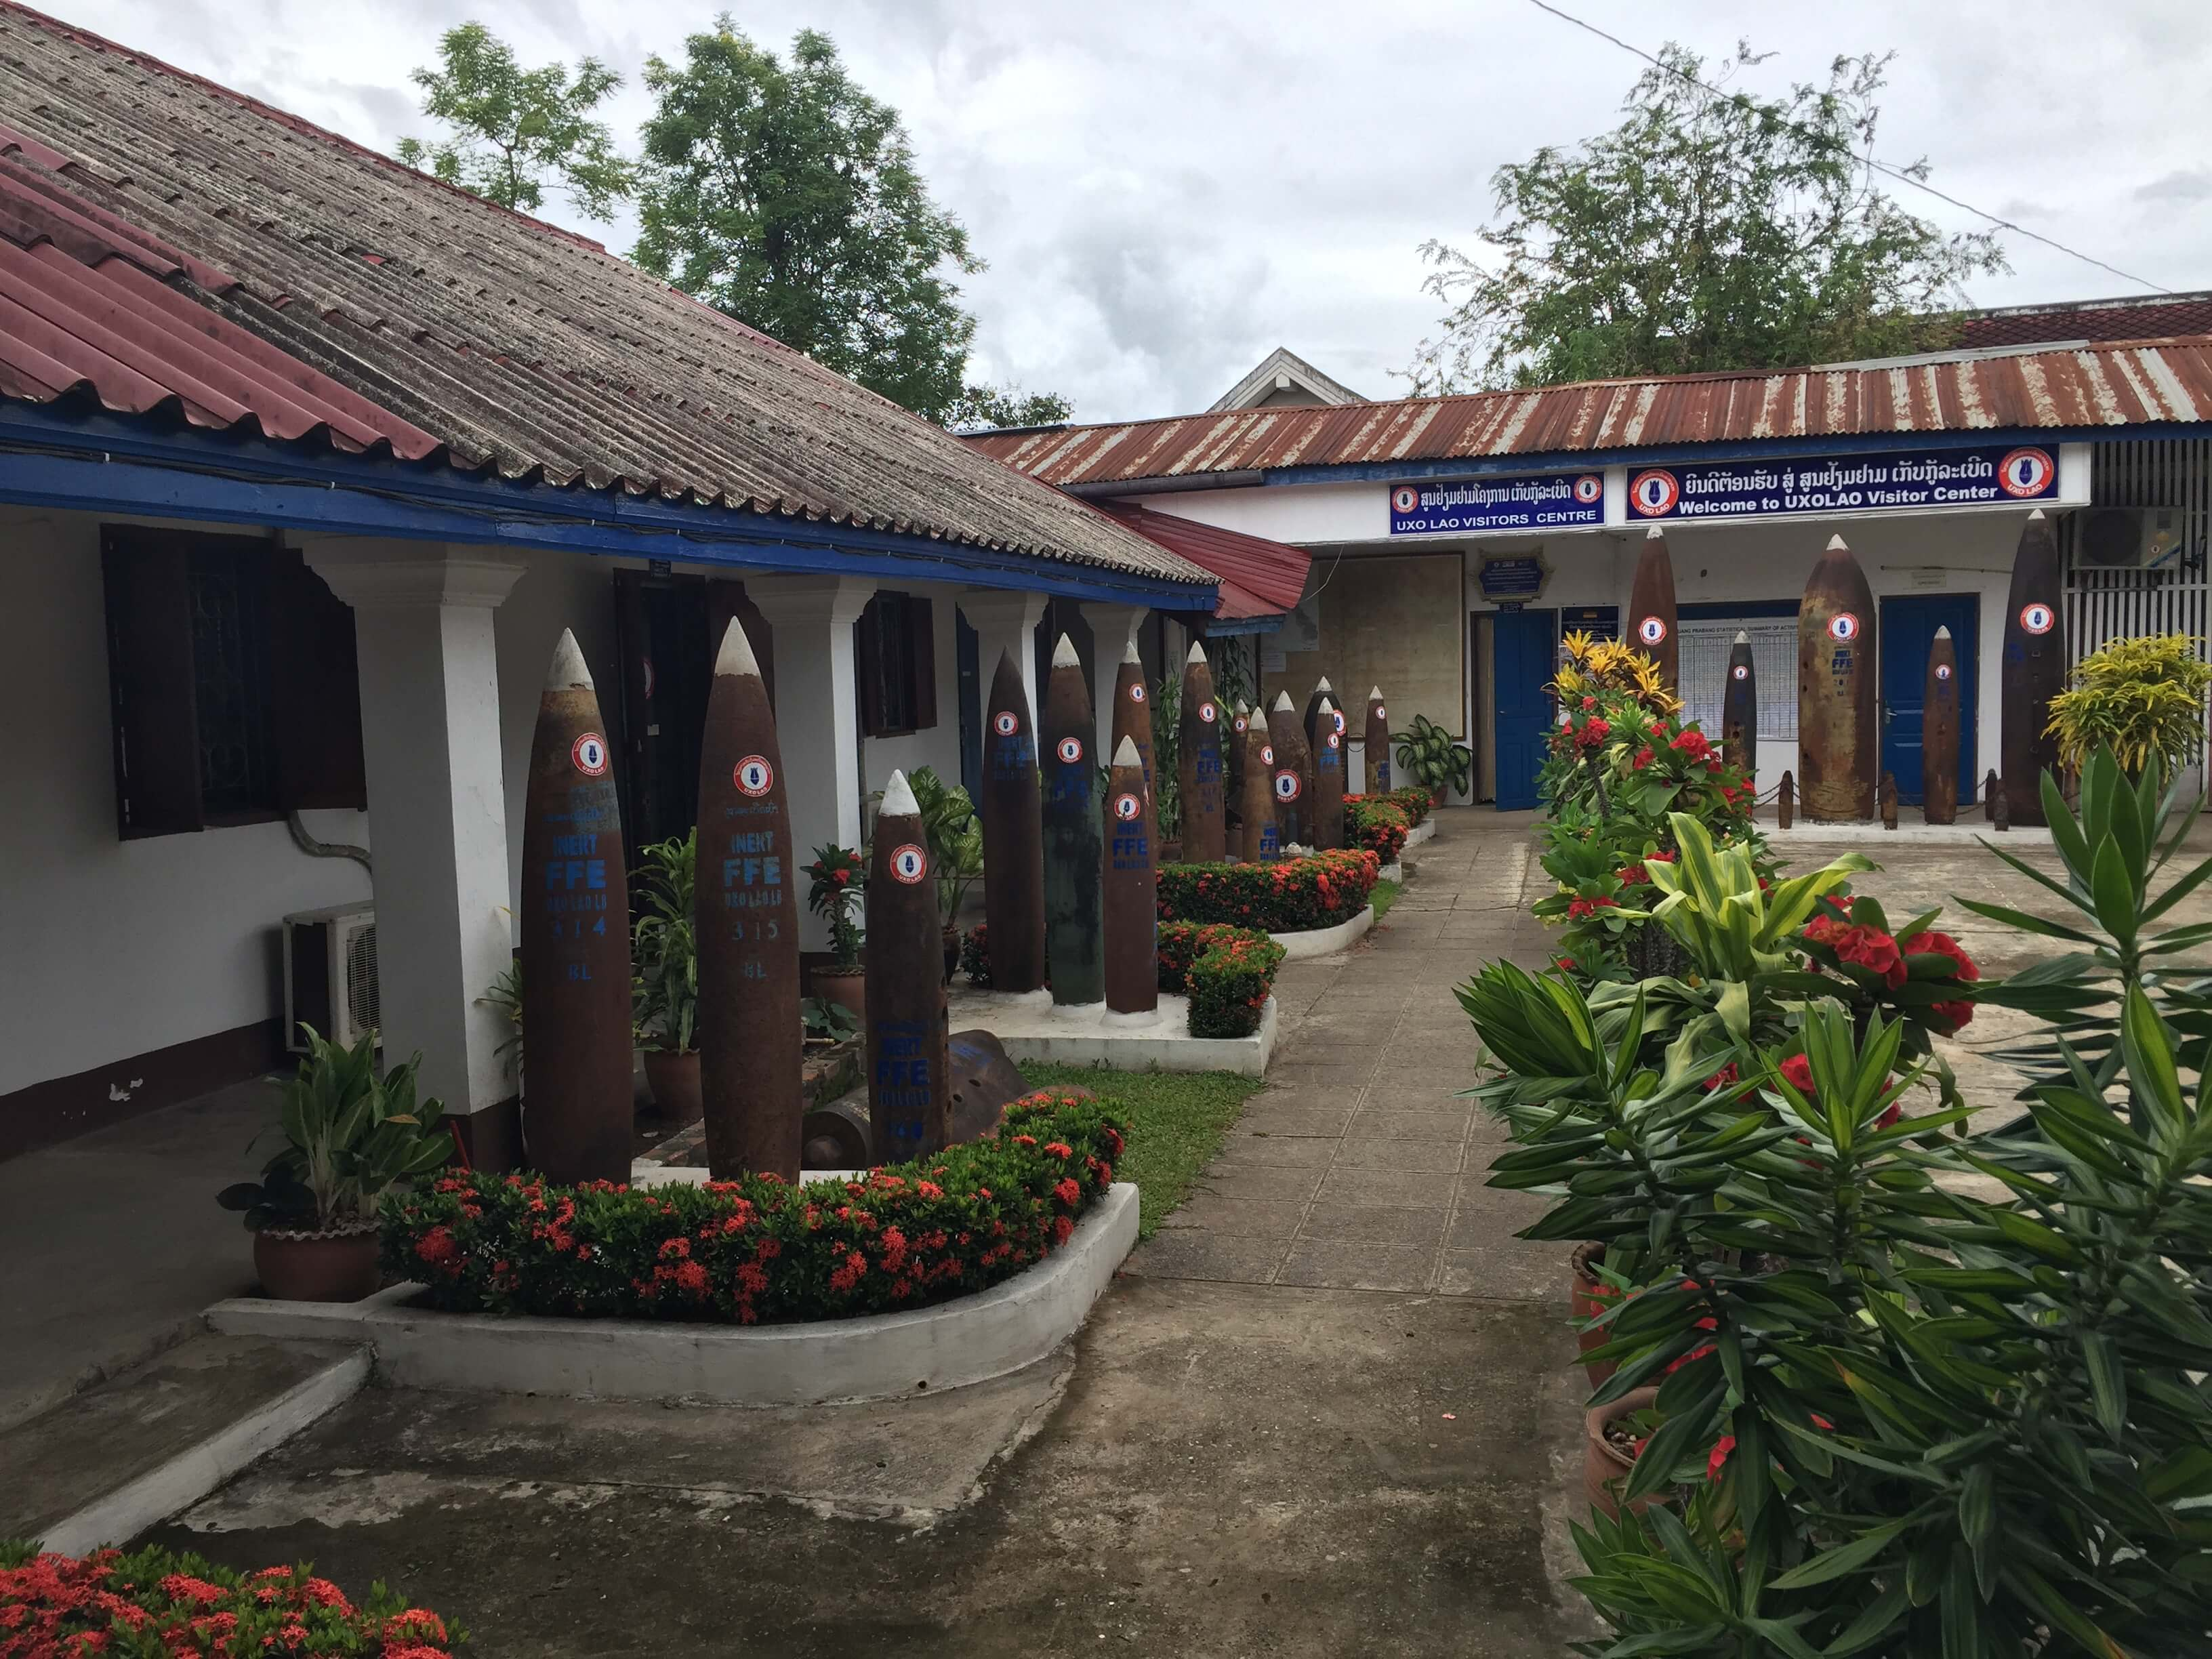 The UXO Visitor Center in Luang Prabang, Laos